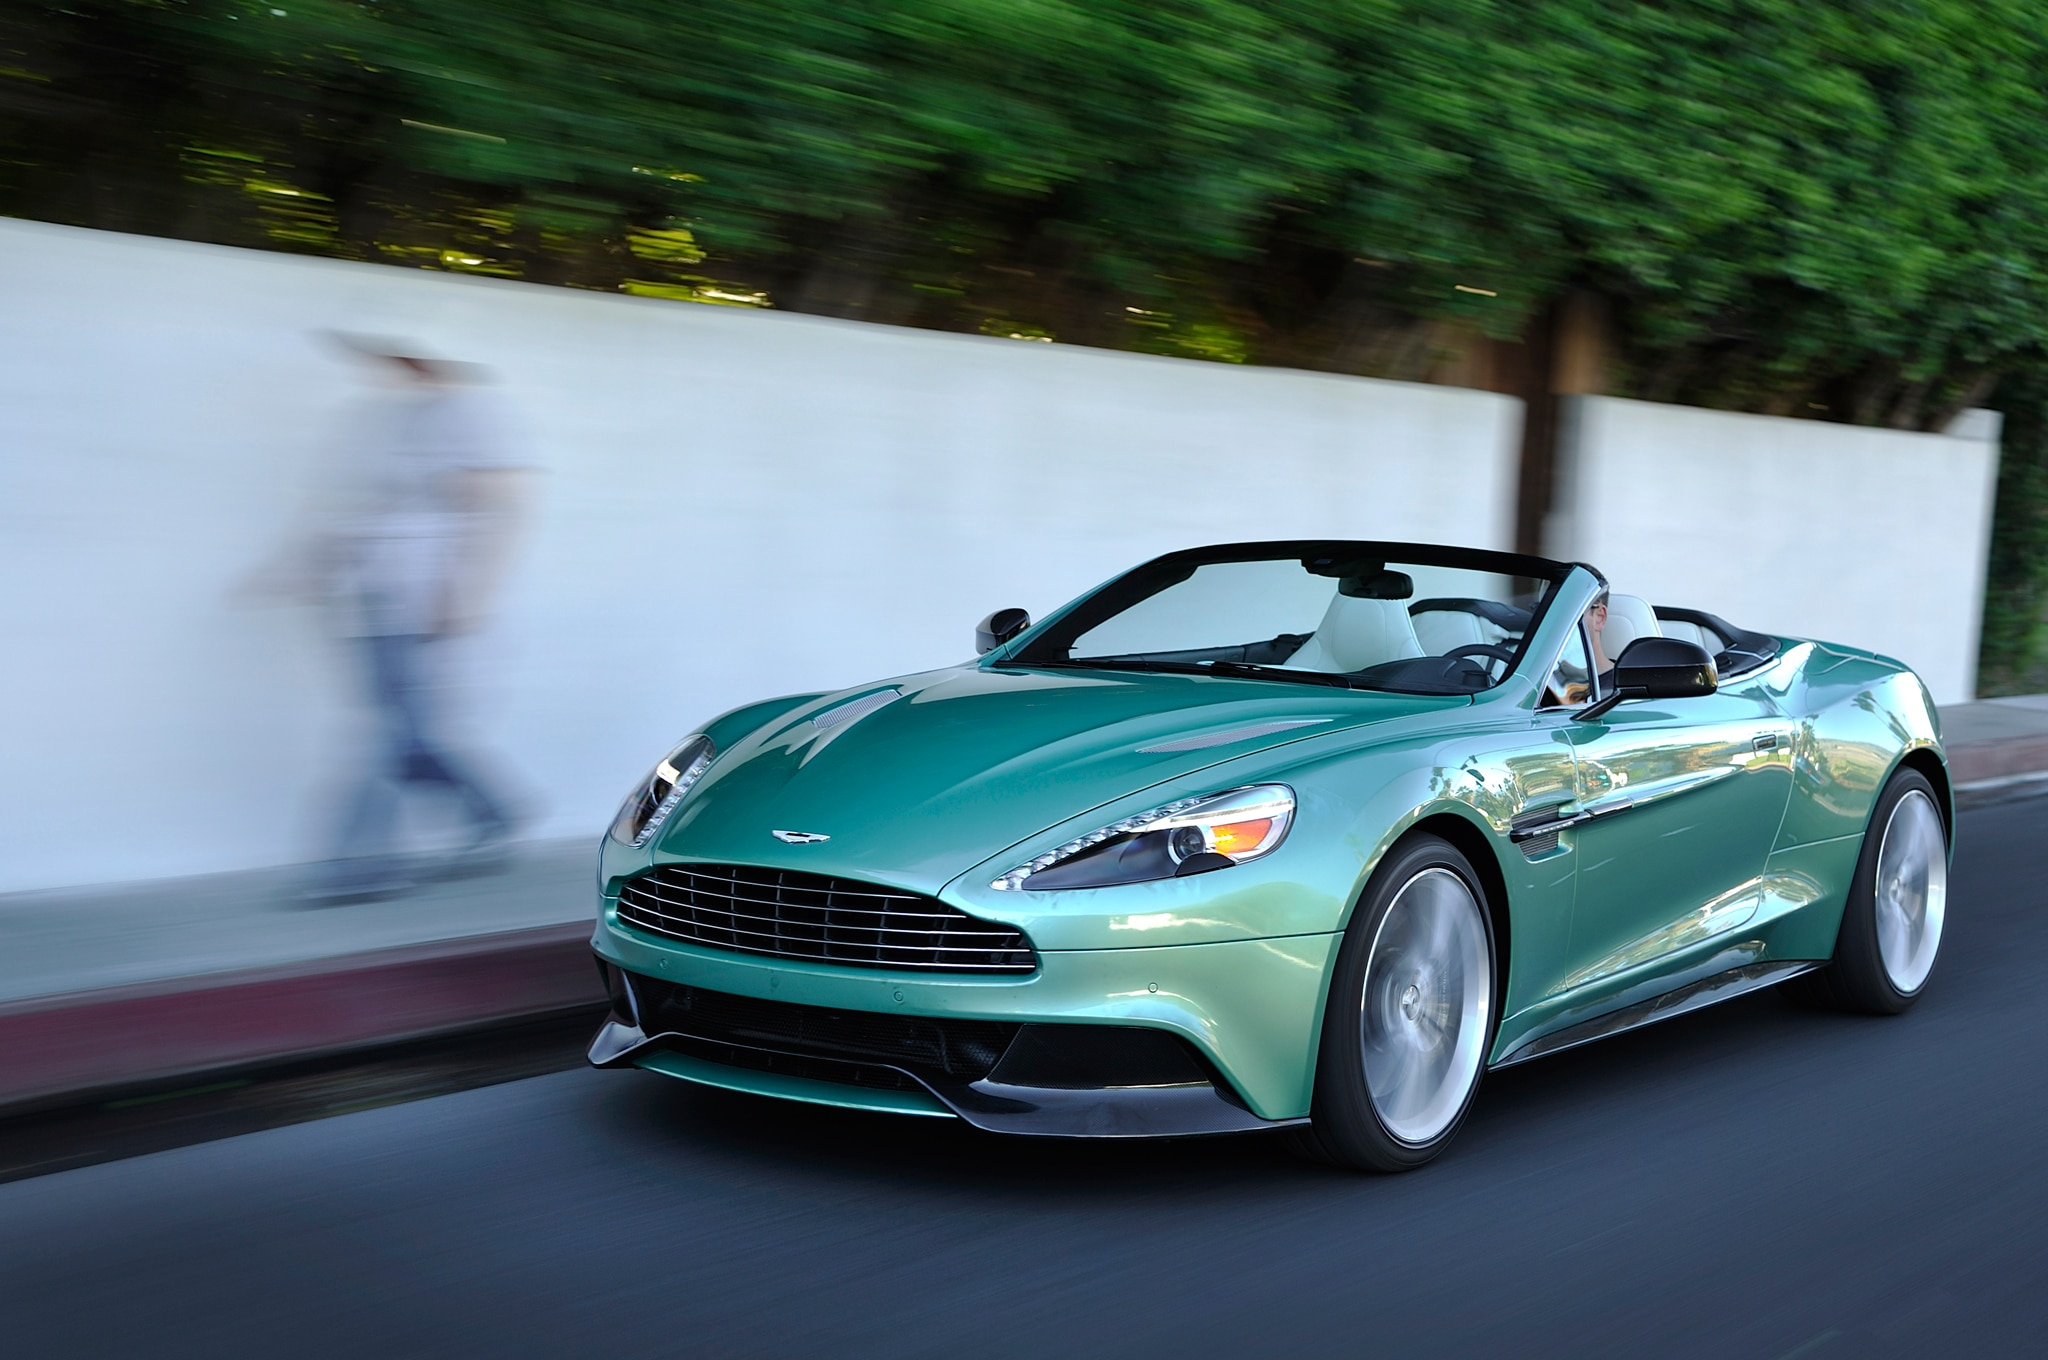 2014 aston martin vanquish volante review automobile magazine. Black Bedroom Furniture Sets. Home Design Ideas